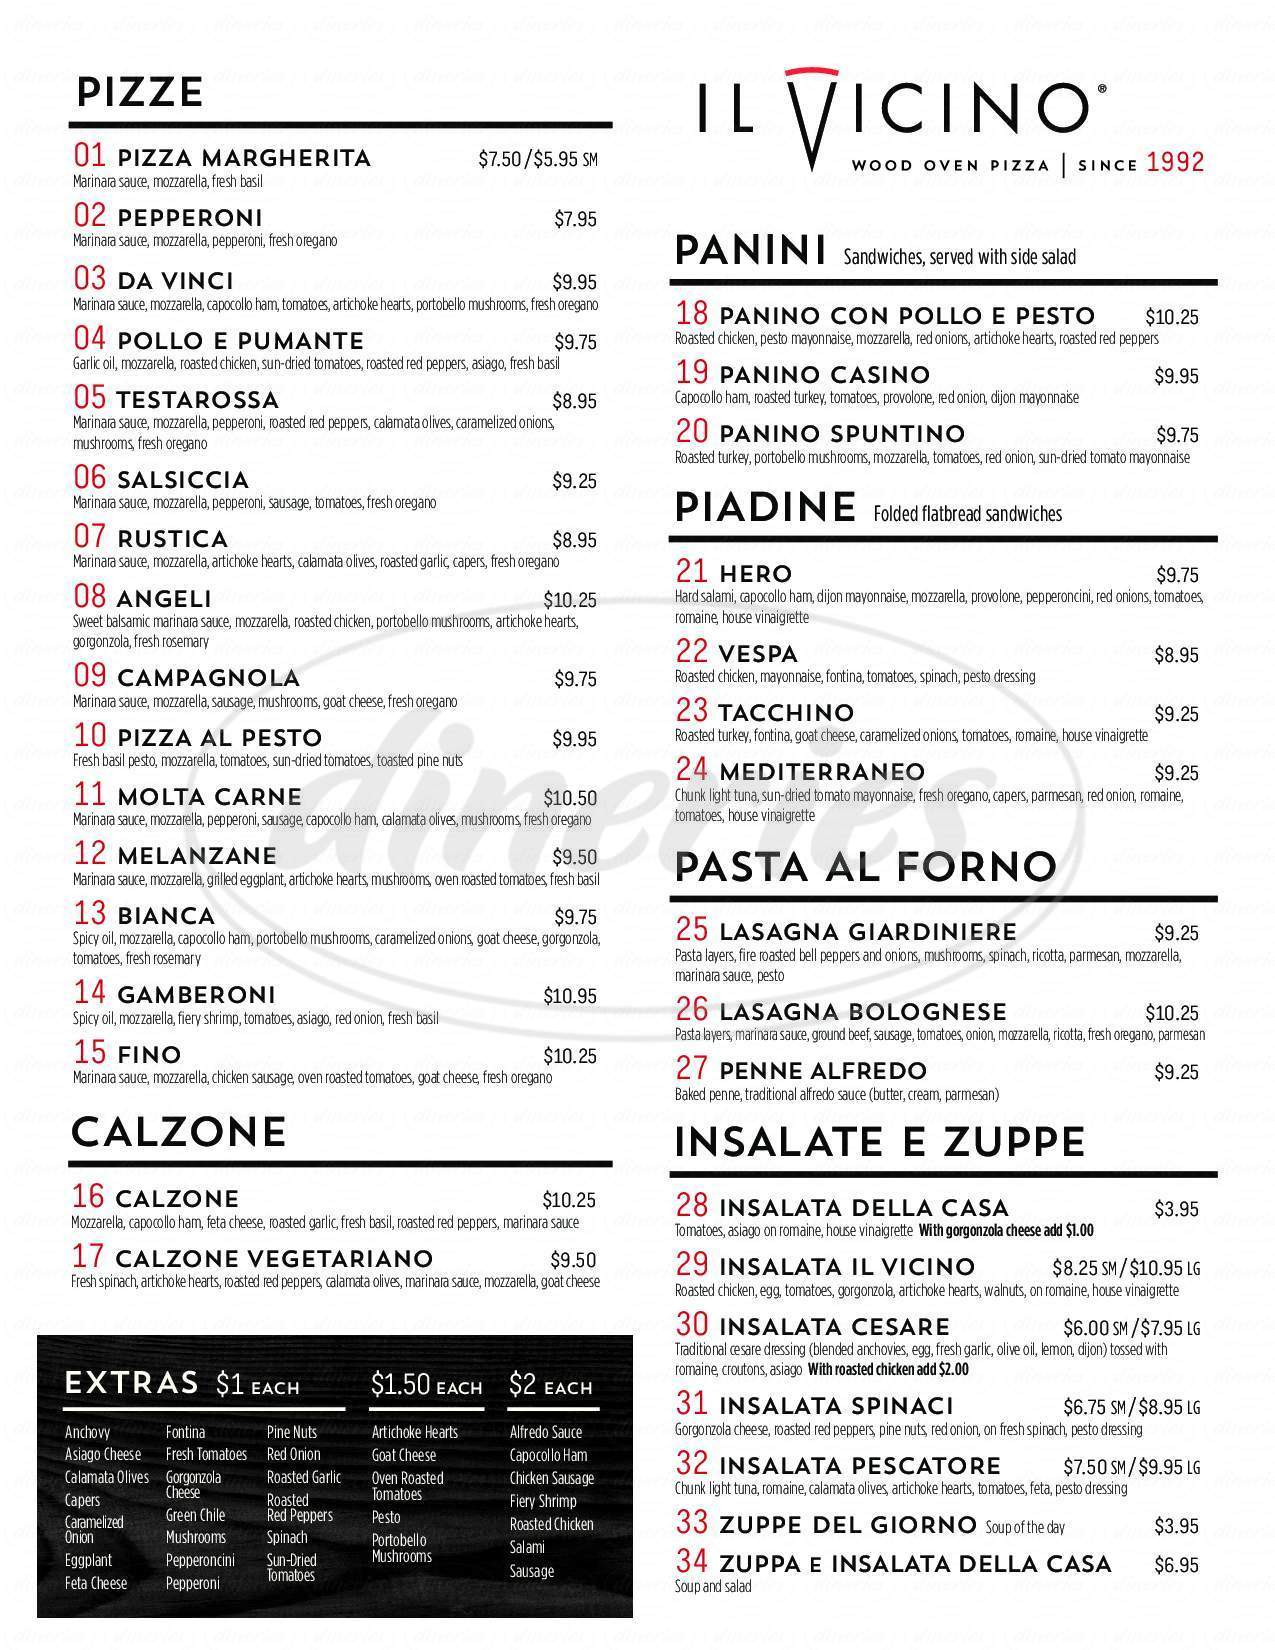 menu for Il Vicino Wood Oven Pizza